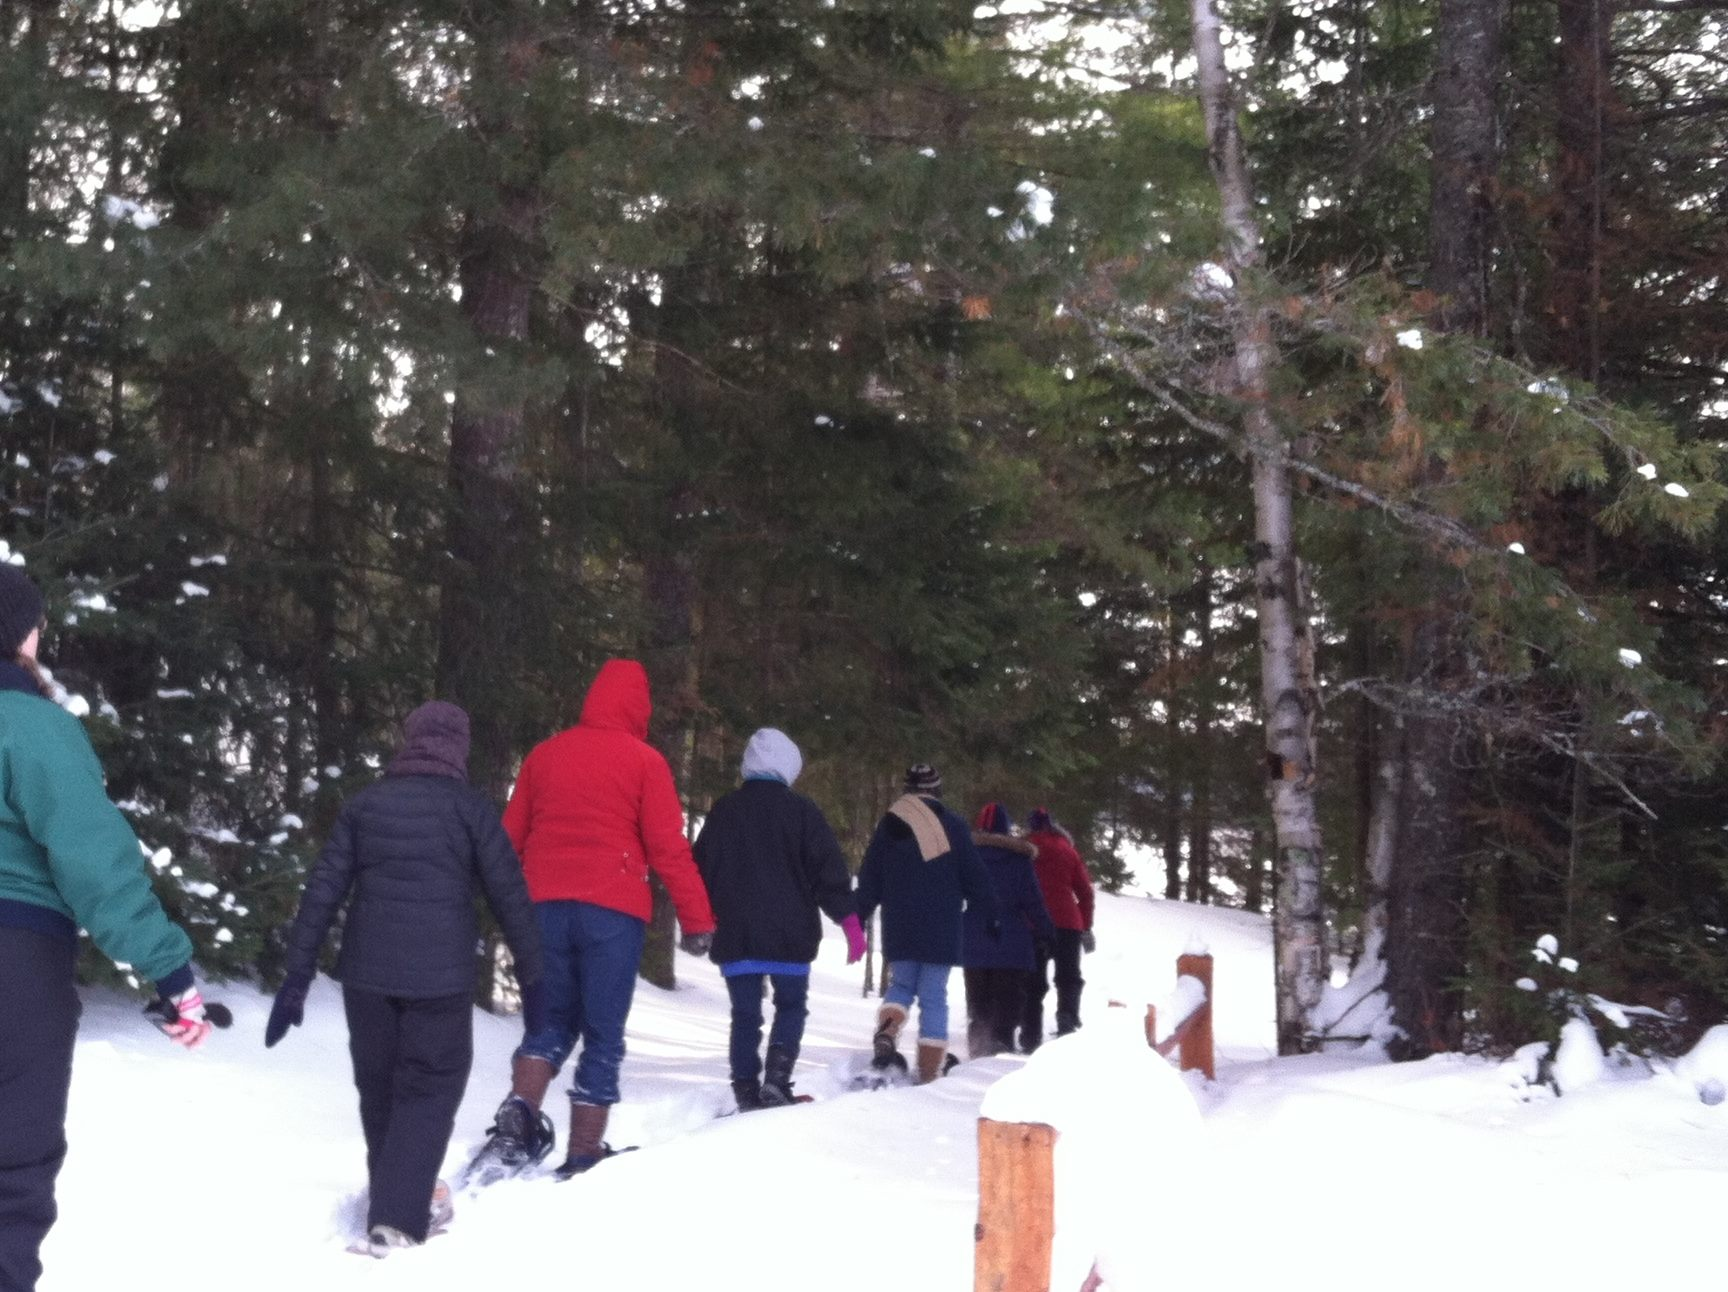 Snowshoeing the nature trail.